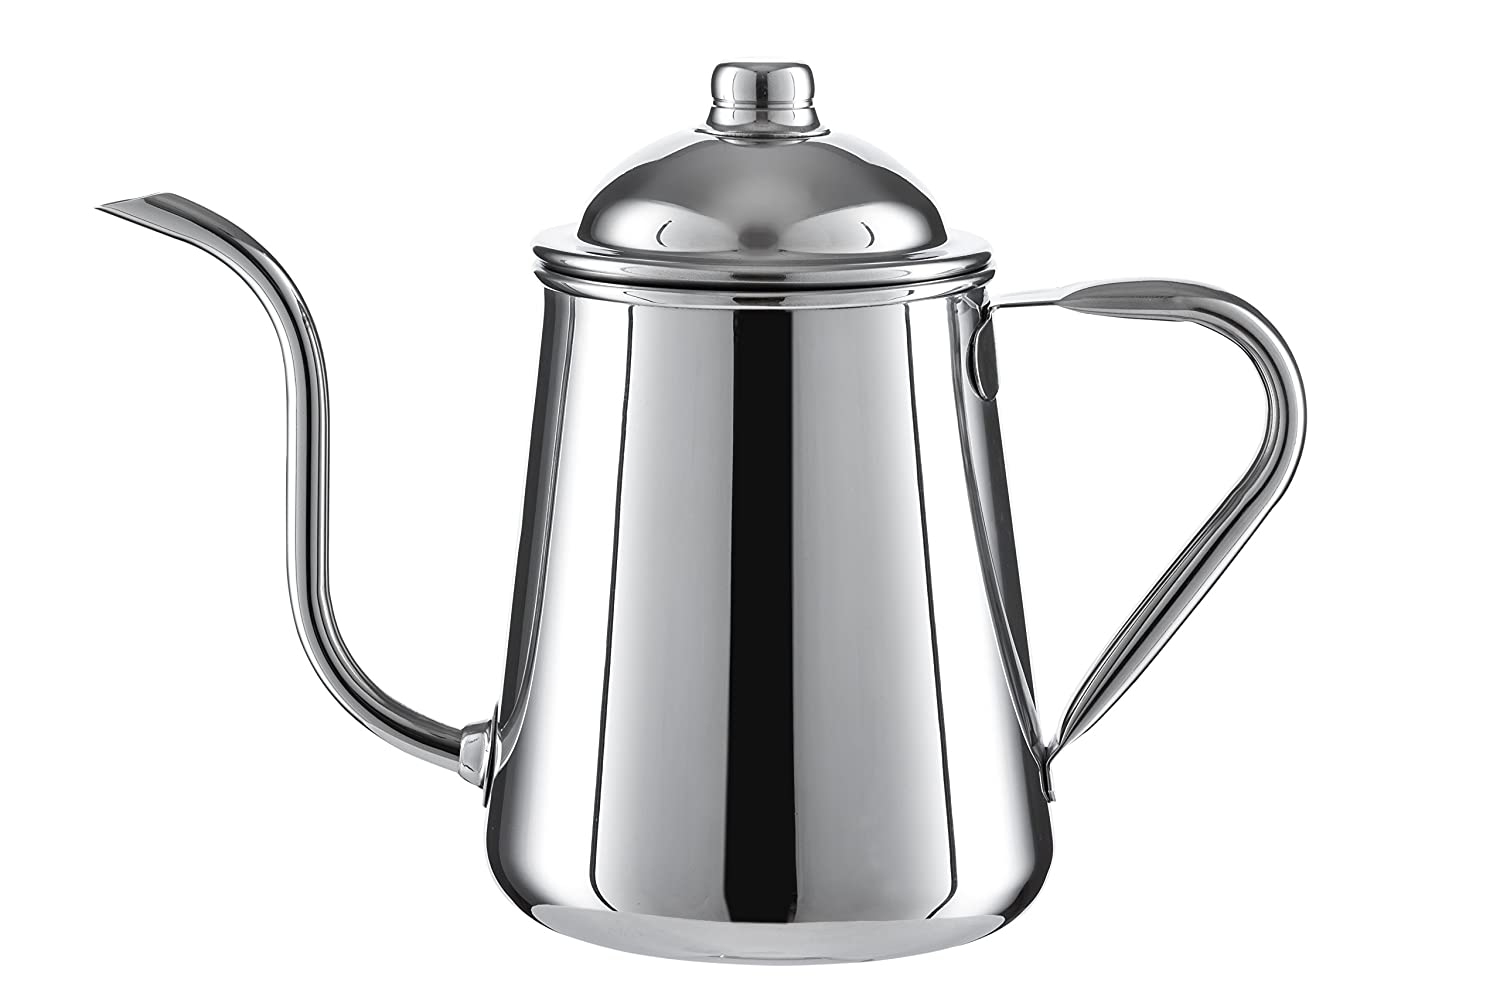 Pour Over Drip Kettle Stainless Steel With Precision Gooseneck spout for amazing water flow control. Ideal for pour over coffee and tea - 0.9L capacity Olive Kube COMINHKPR121421